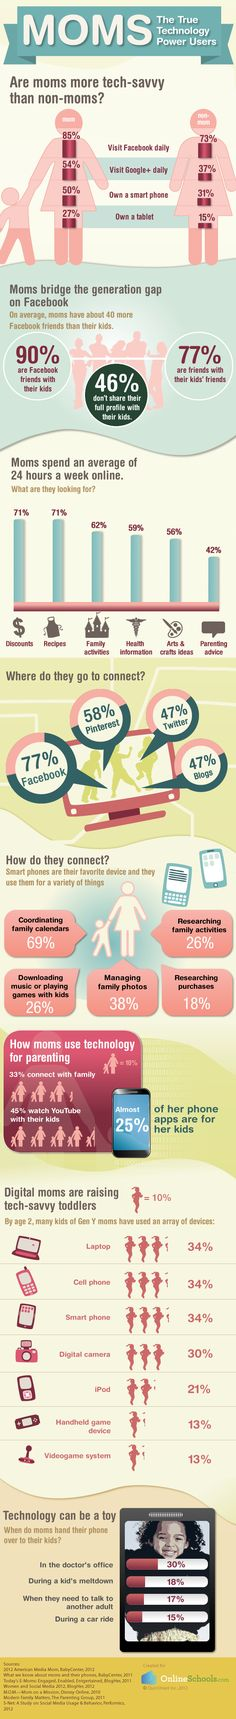 Moms: The True Technology Power Users #infographic